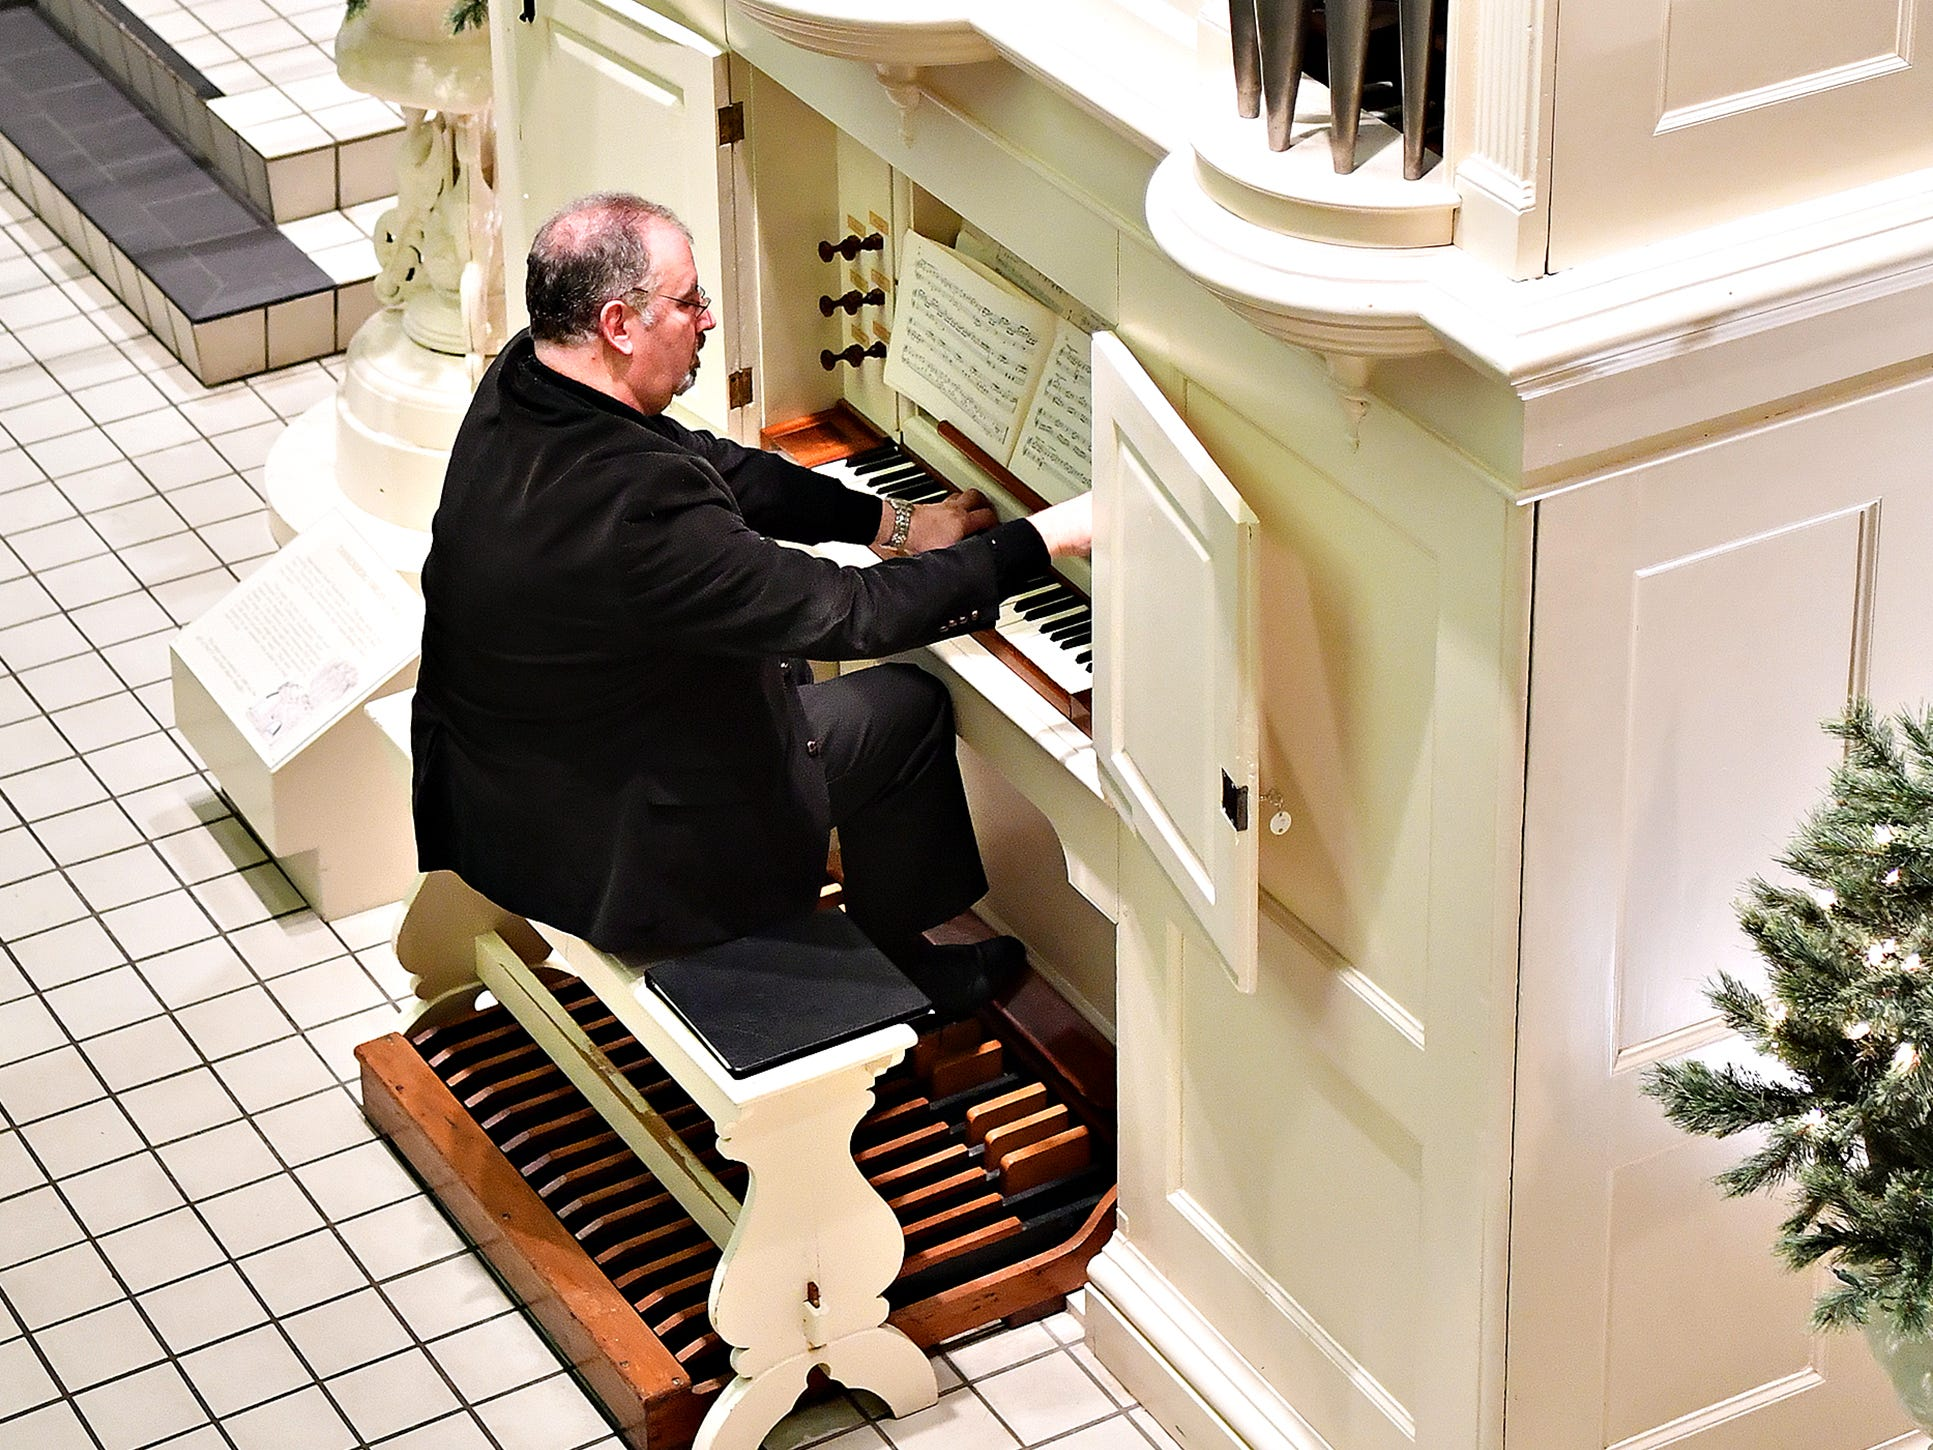 Victor Fields, of Springfield Township, plays the David Tannenberg Organ during a free performance and fundraising campaign launch on Giving Tuesday at York County History Center in York City, Tuesday, Nov. 27, 2018. The history center is hoping to raise $250,000 for the restoration of the 1804 Tannenberg organ. Dawn J. Sagert photo